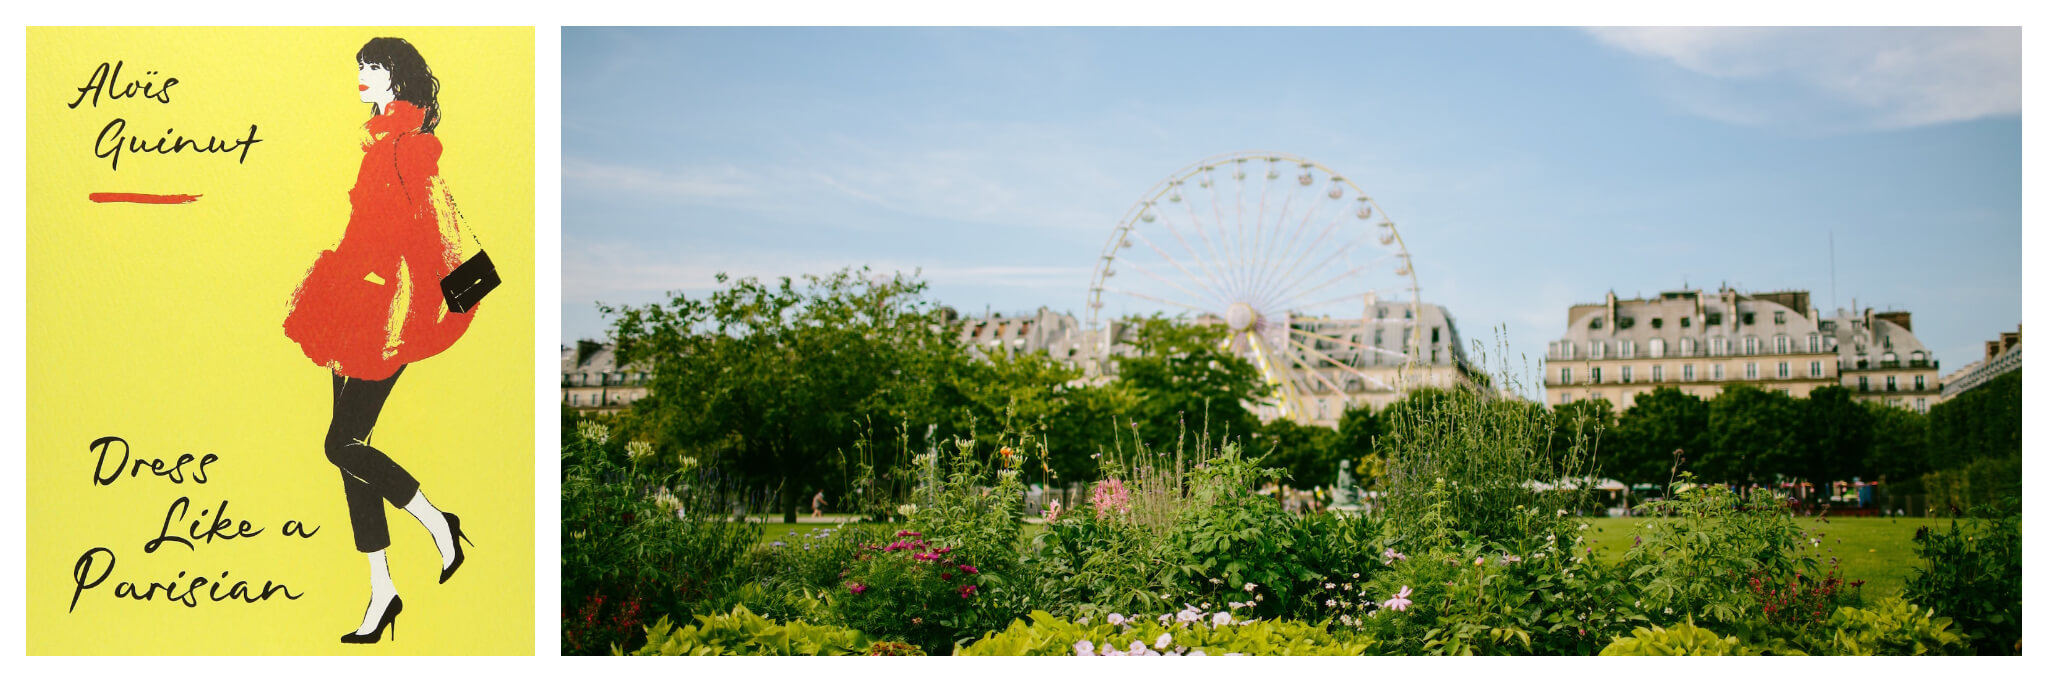 Right: A bright, sunny day in Paris where the green Jardin de Tuileries is visible in the forefront and a ferris wheel and apartments are visible in the background.